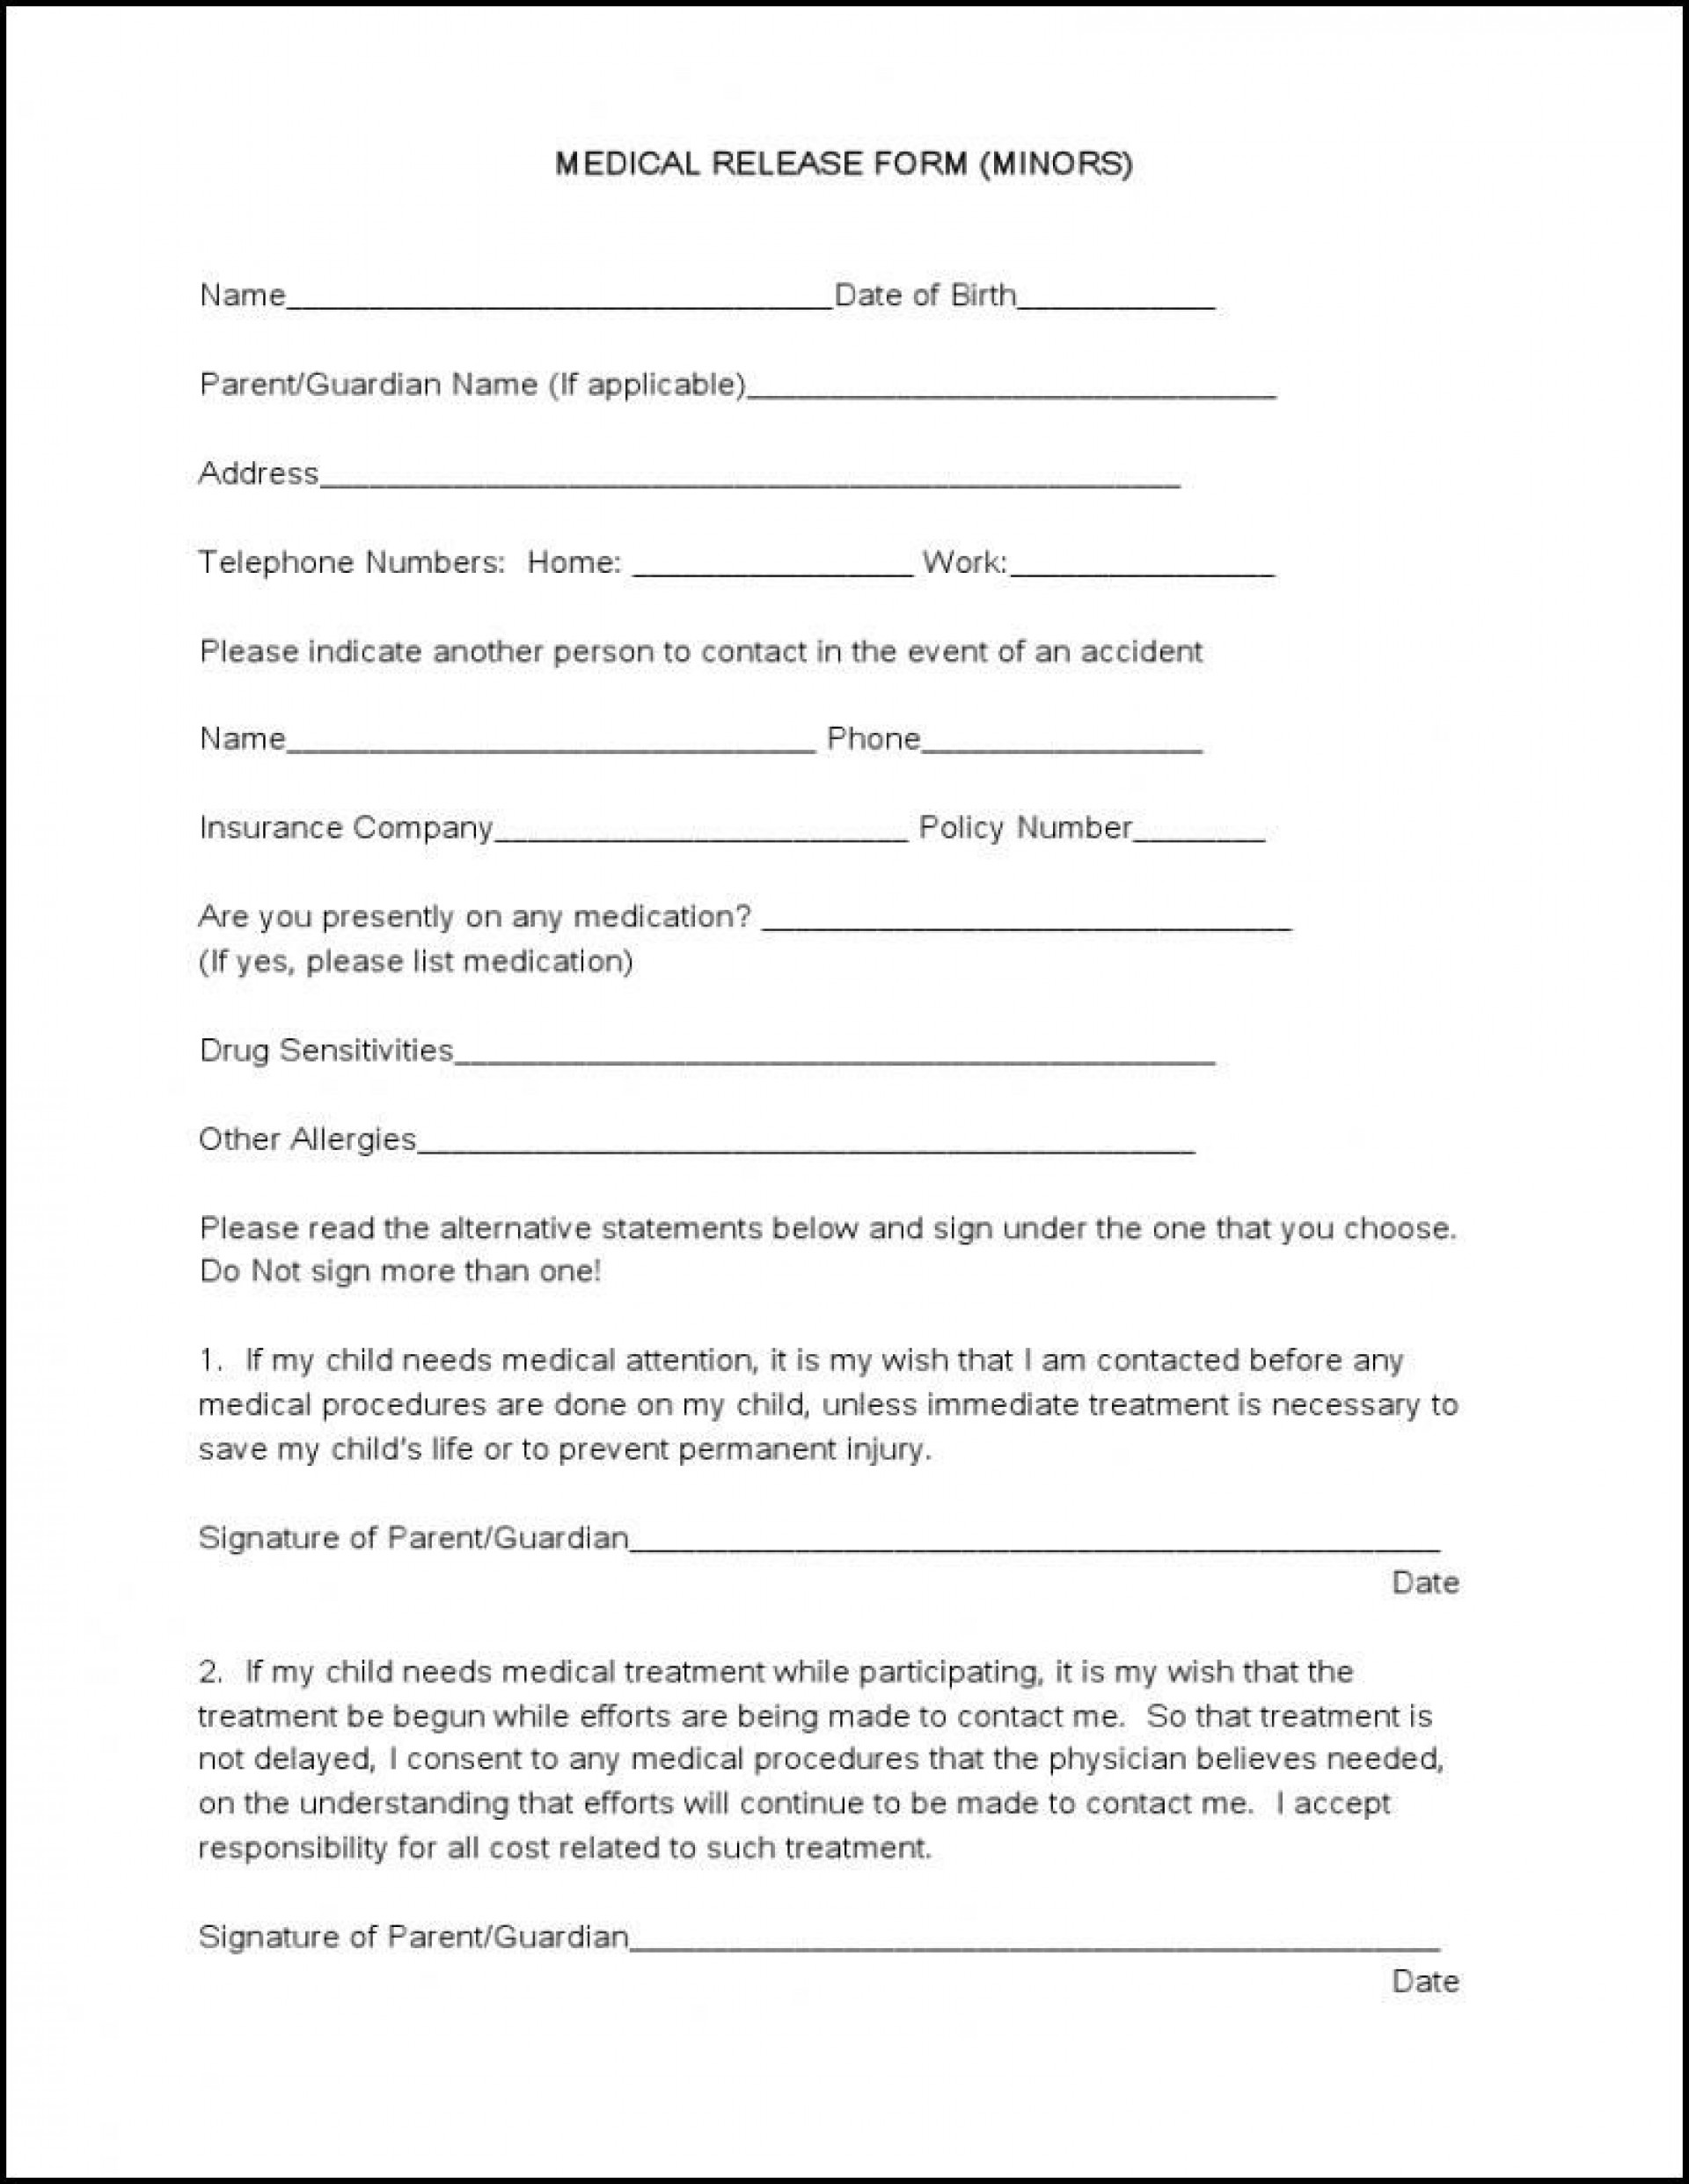 007 Impressive Medical Record Release Form Template Image  Request Free Personal1920